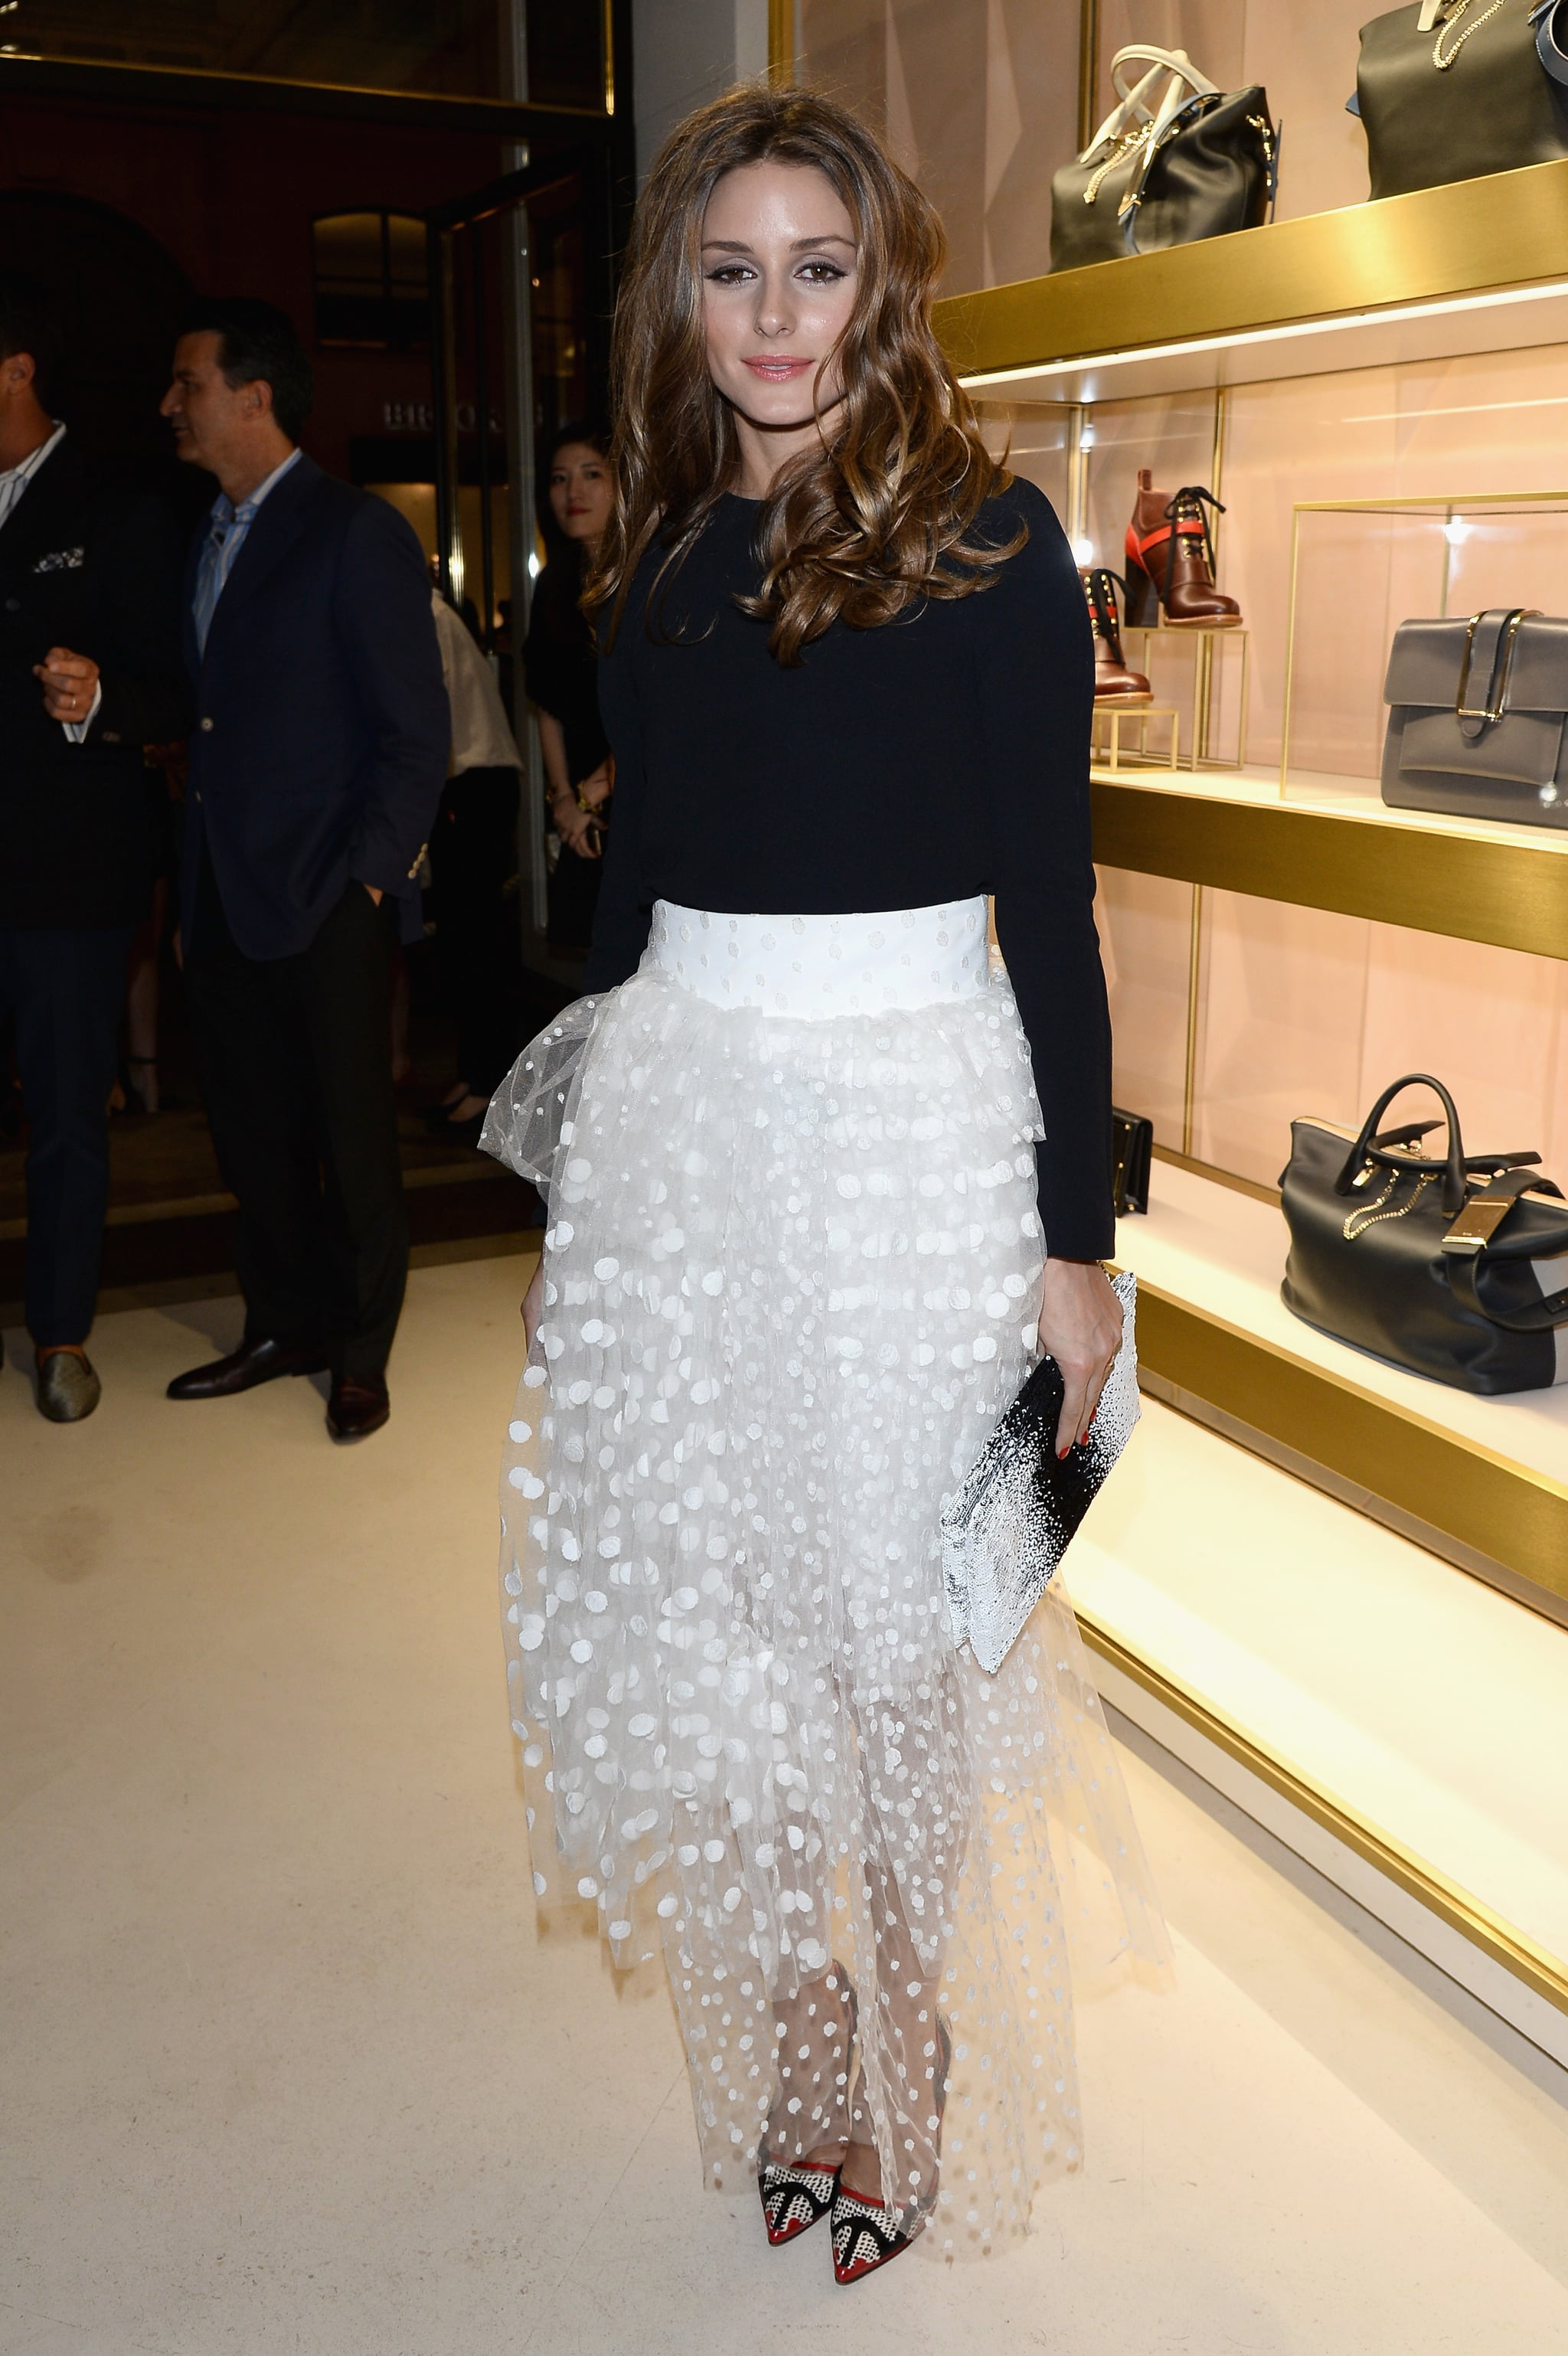 We have a feeling that Carrie Bradshaw would approve of Olivia's tutu-inspired dress.